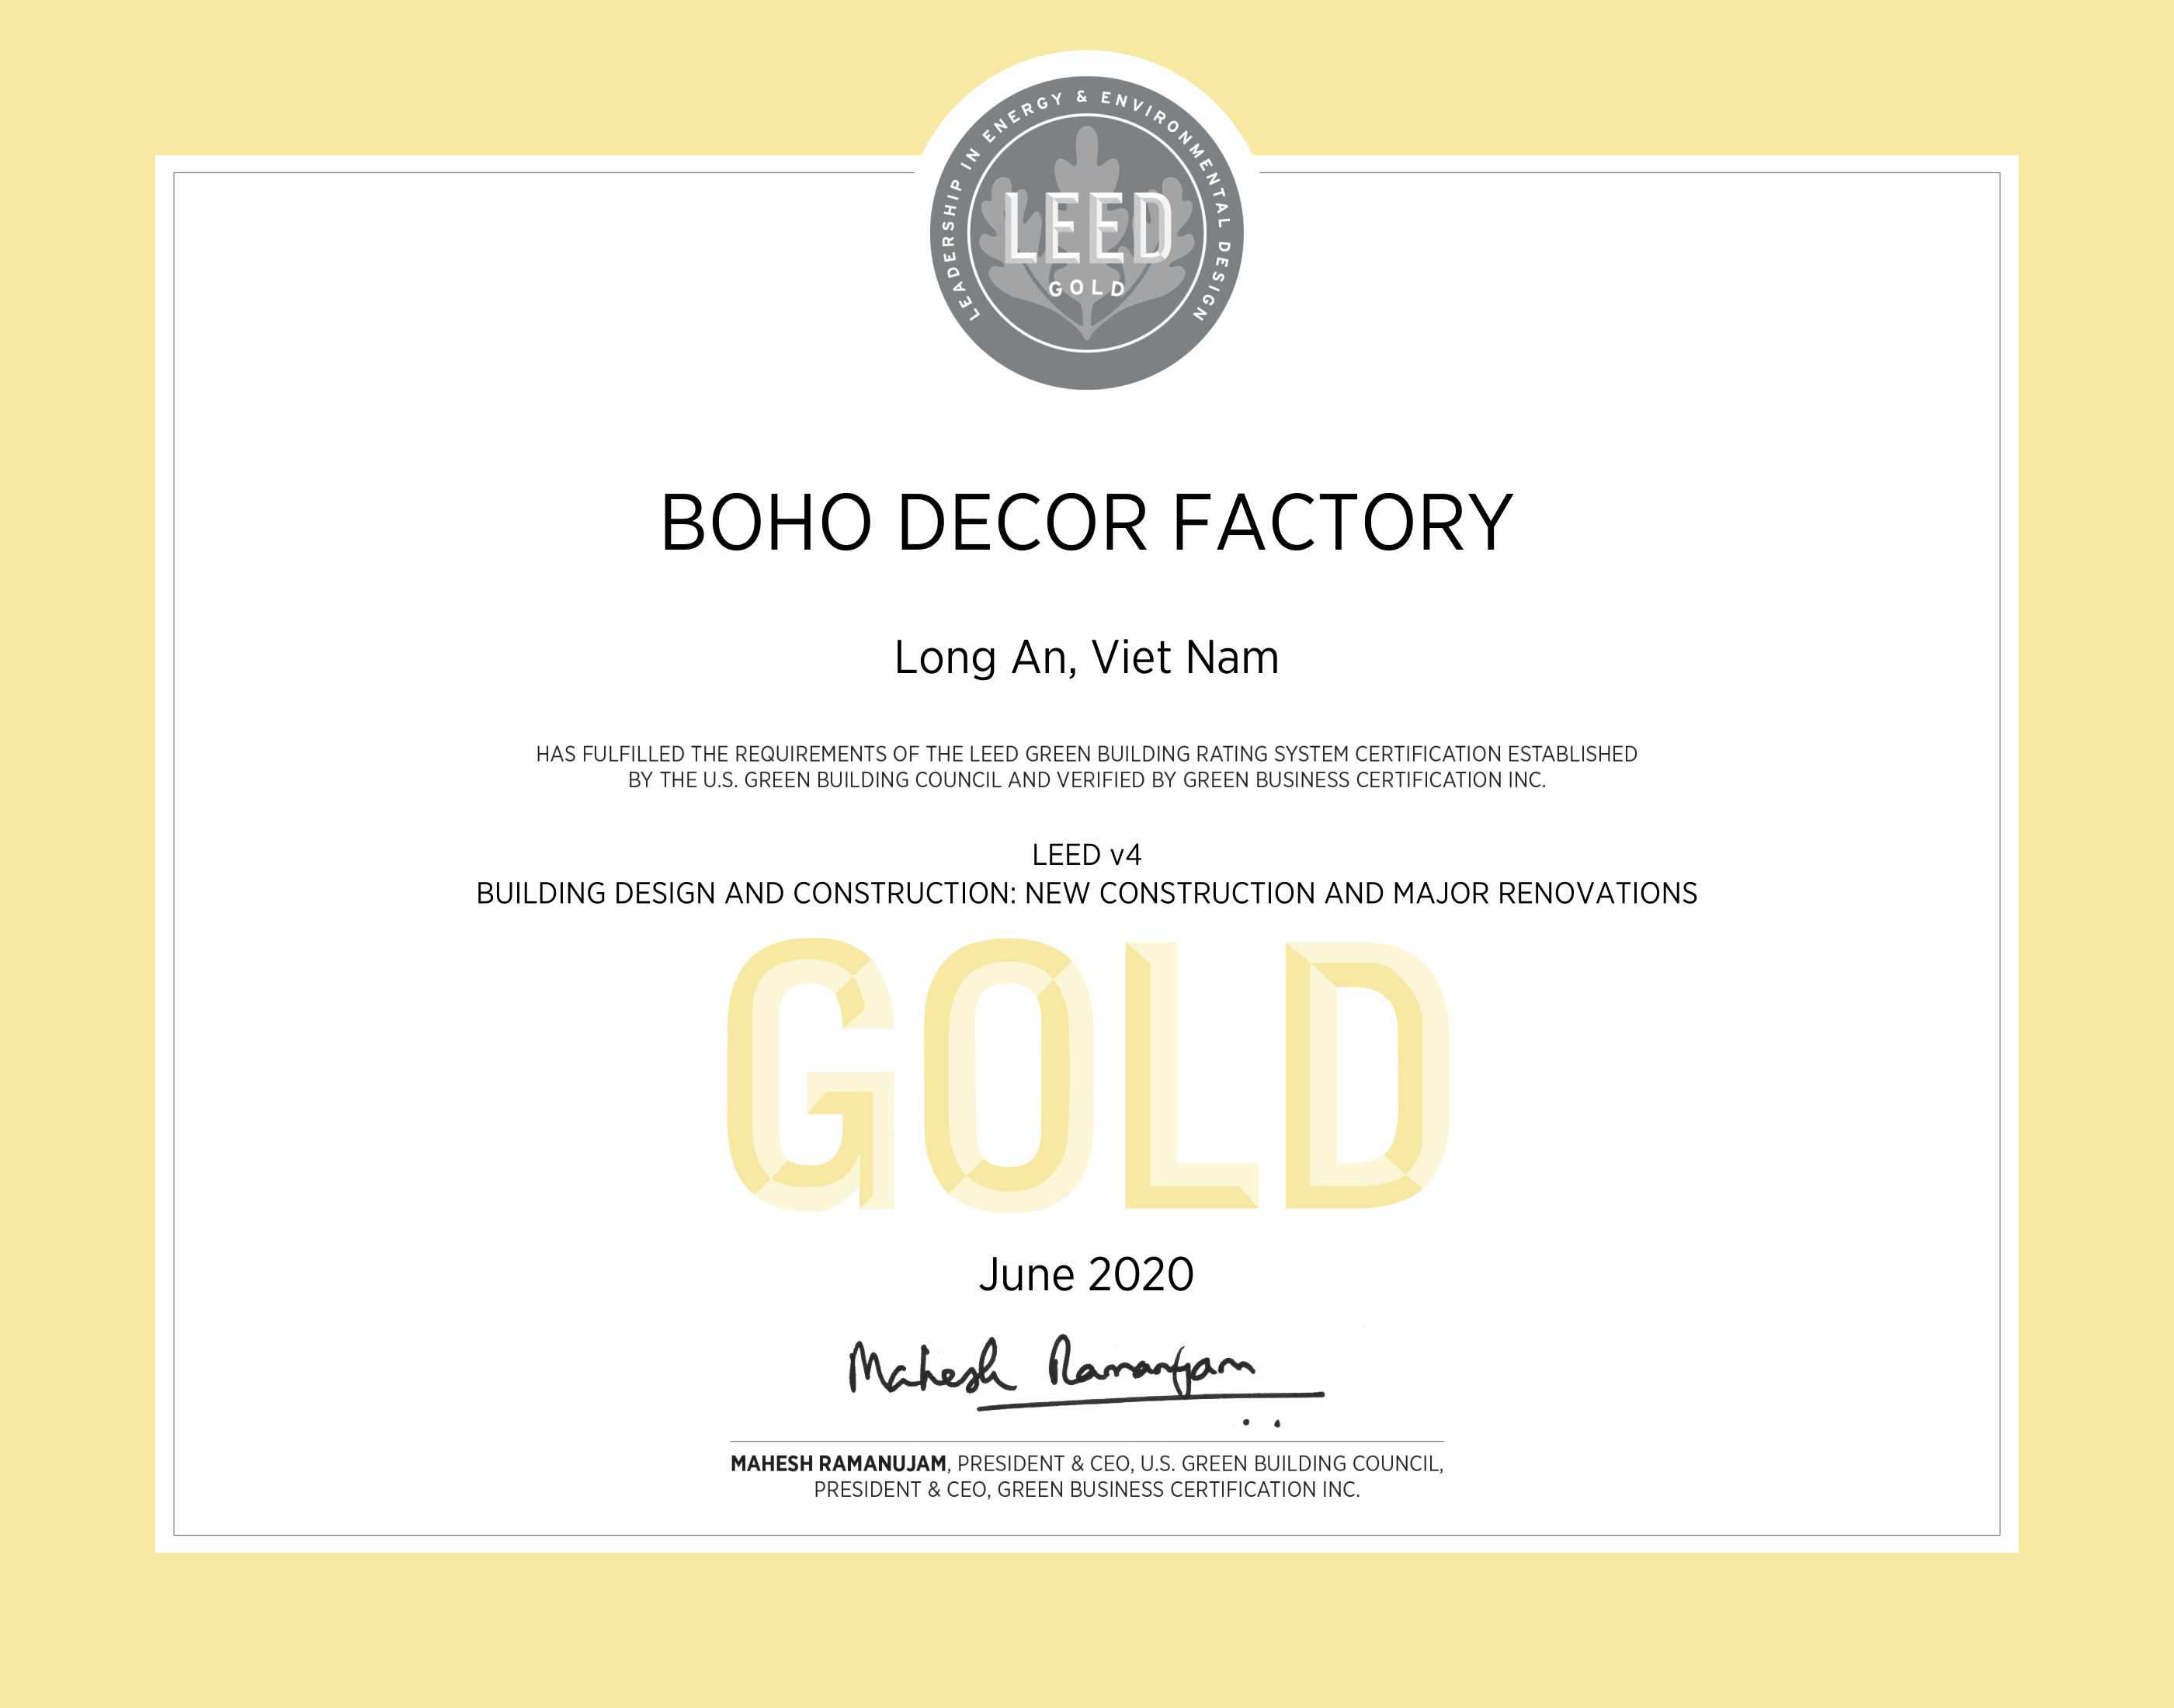 leed-gold-certification